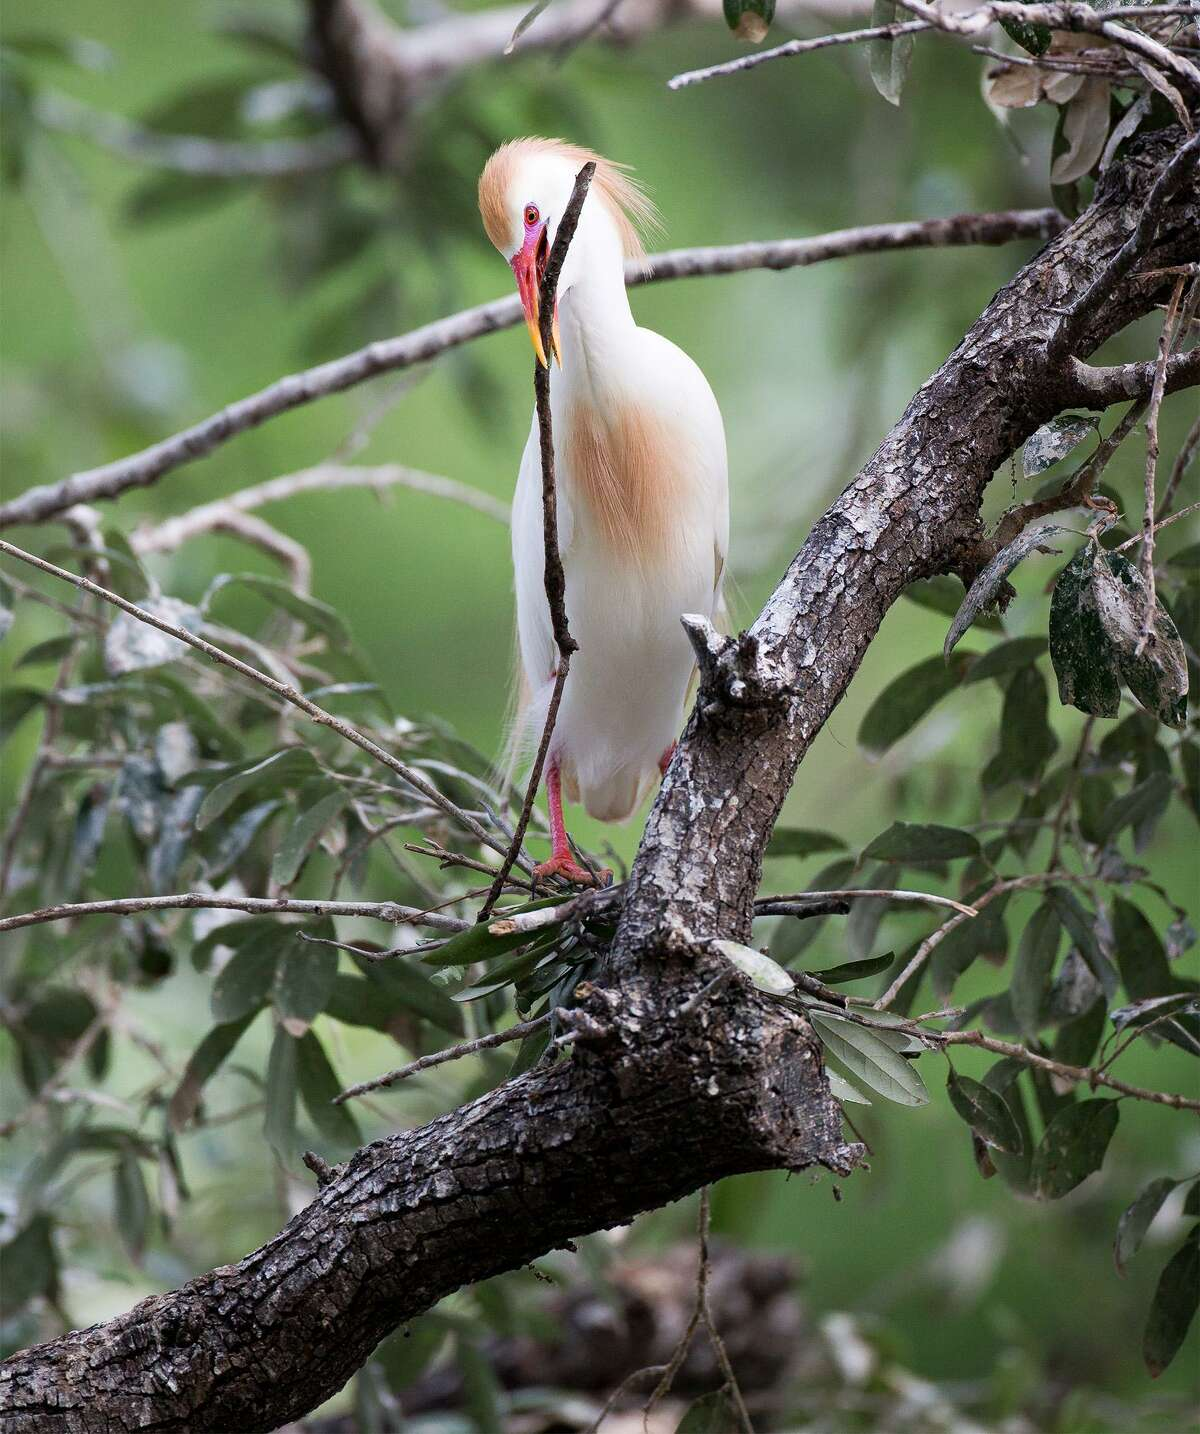 A cattle egret adds a branch to its nest in Brackenridge Park.